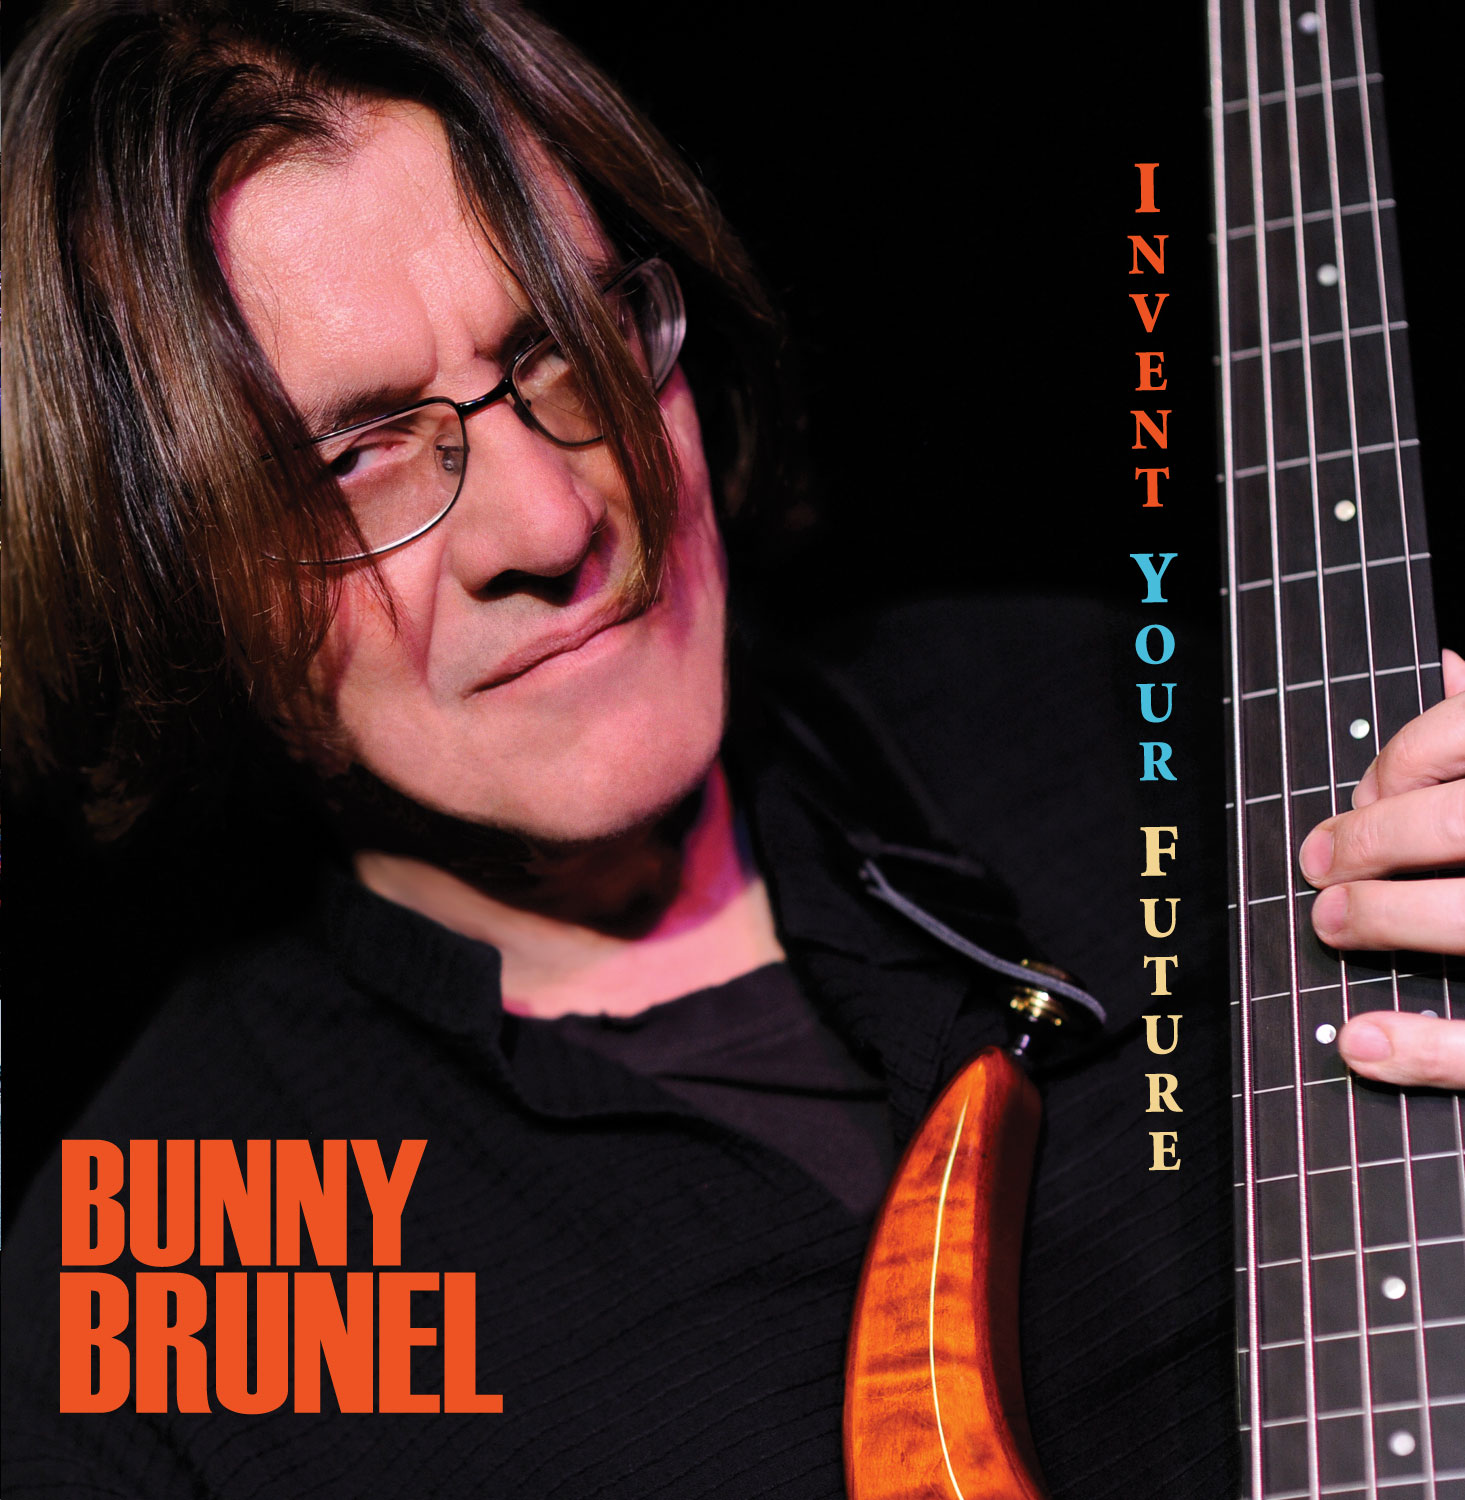 Bunny Brunel Invent Your Future CD Cover